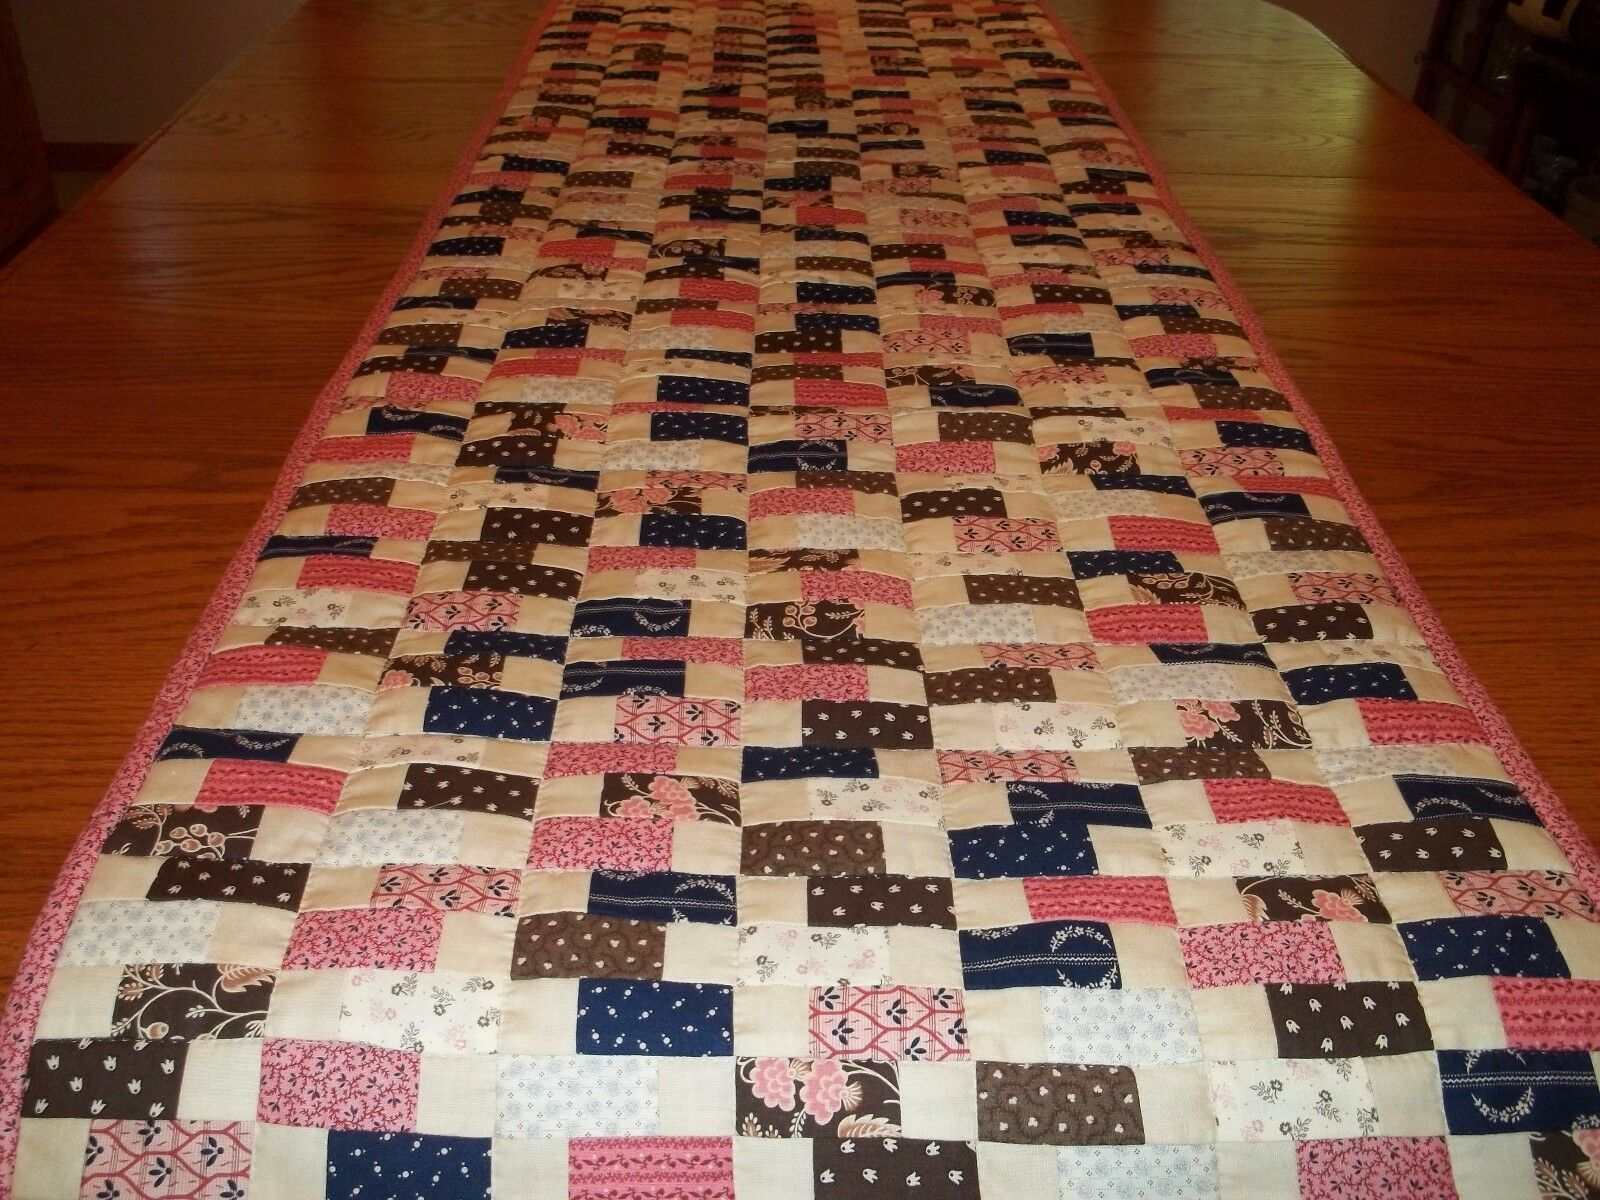 Table Runner Bed Runner, Handcrafted & Hand Quilted, 20 1 2  x 71 , Reversible